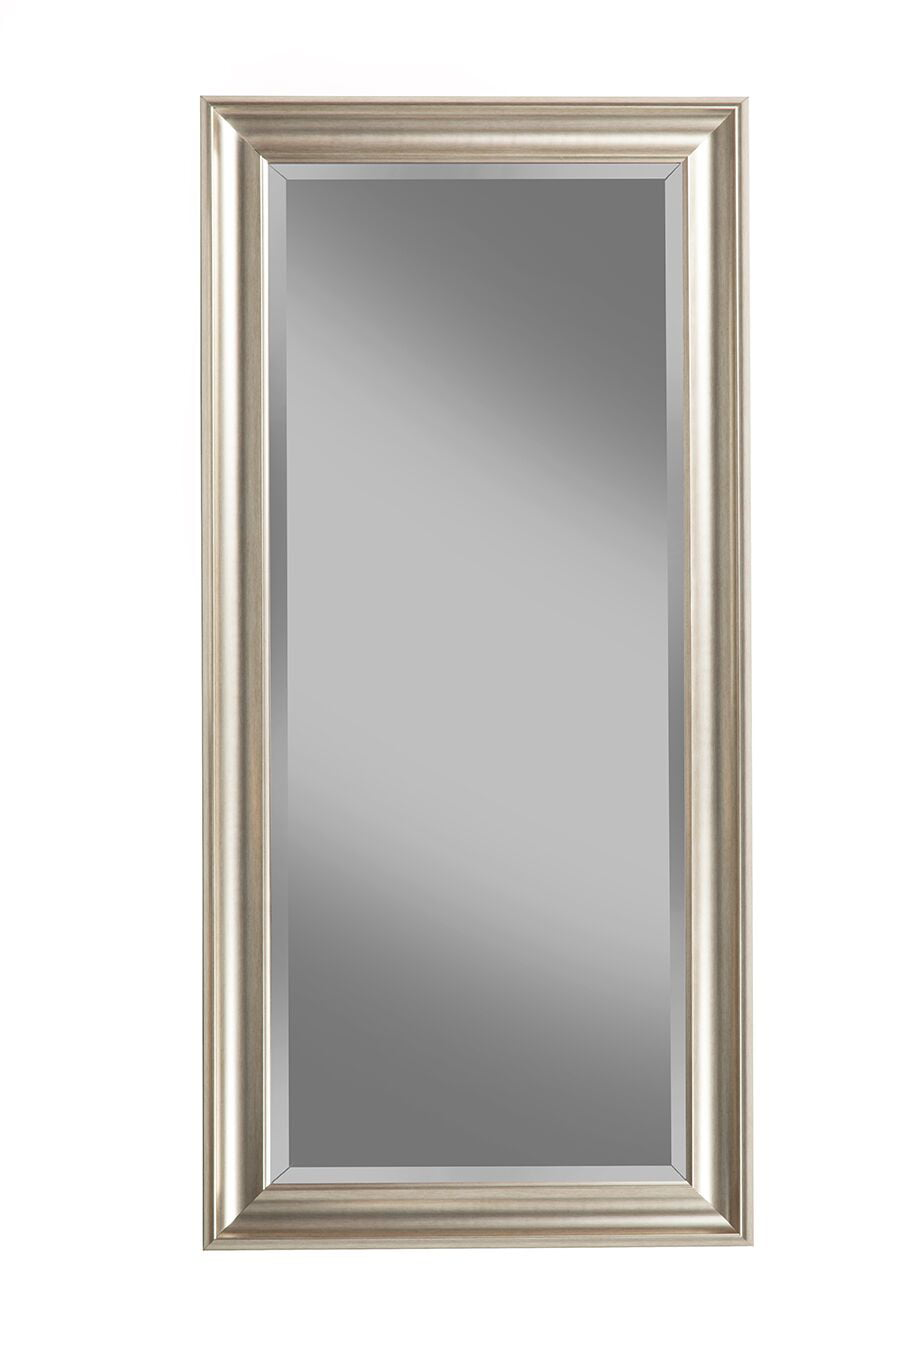 Full Length Mirror Leaning Floor Large Silver Big Standing